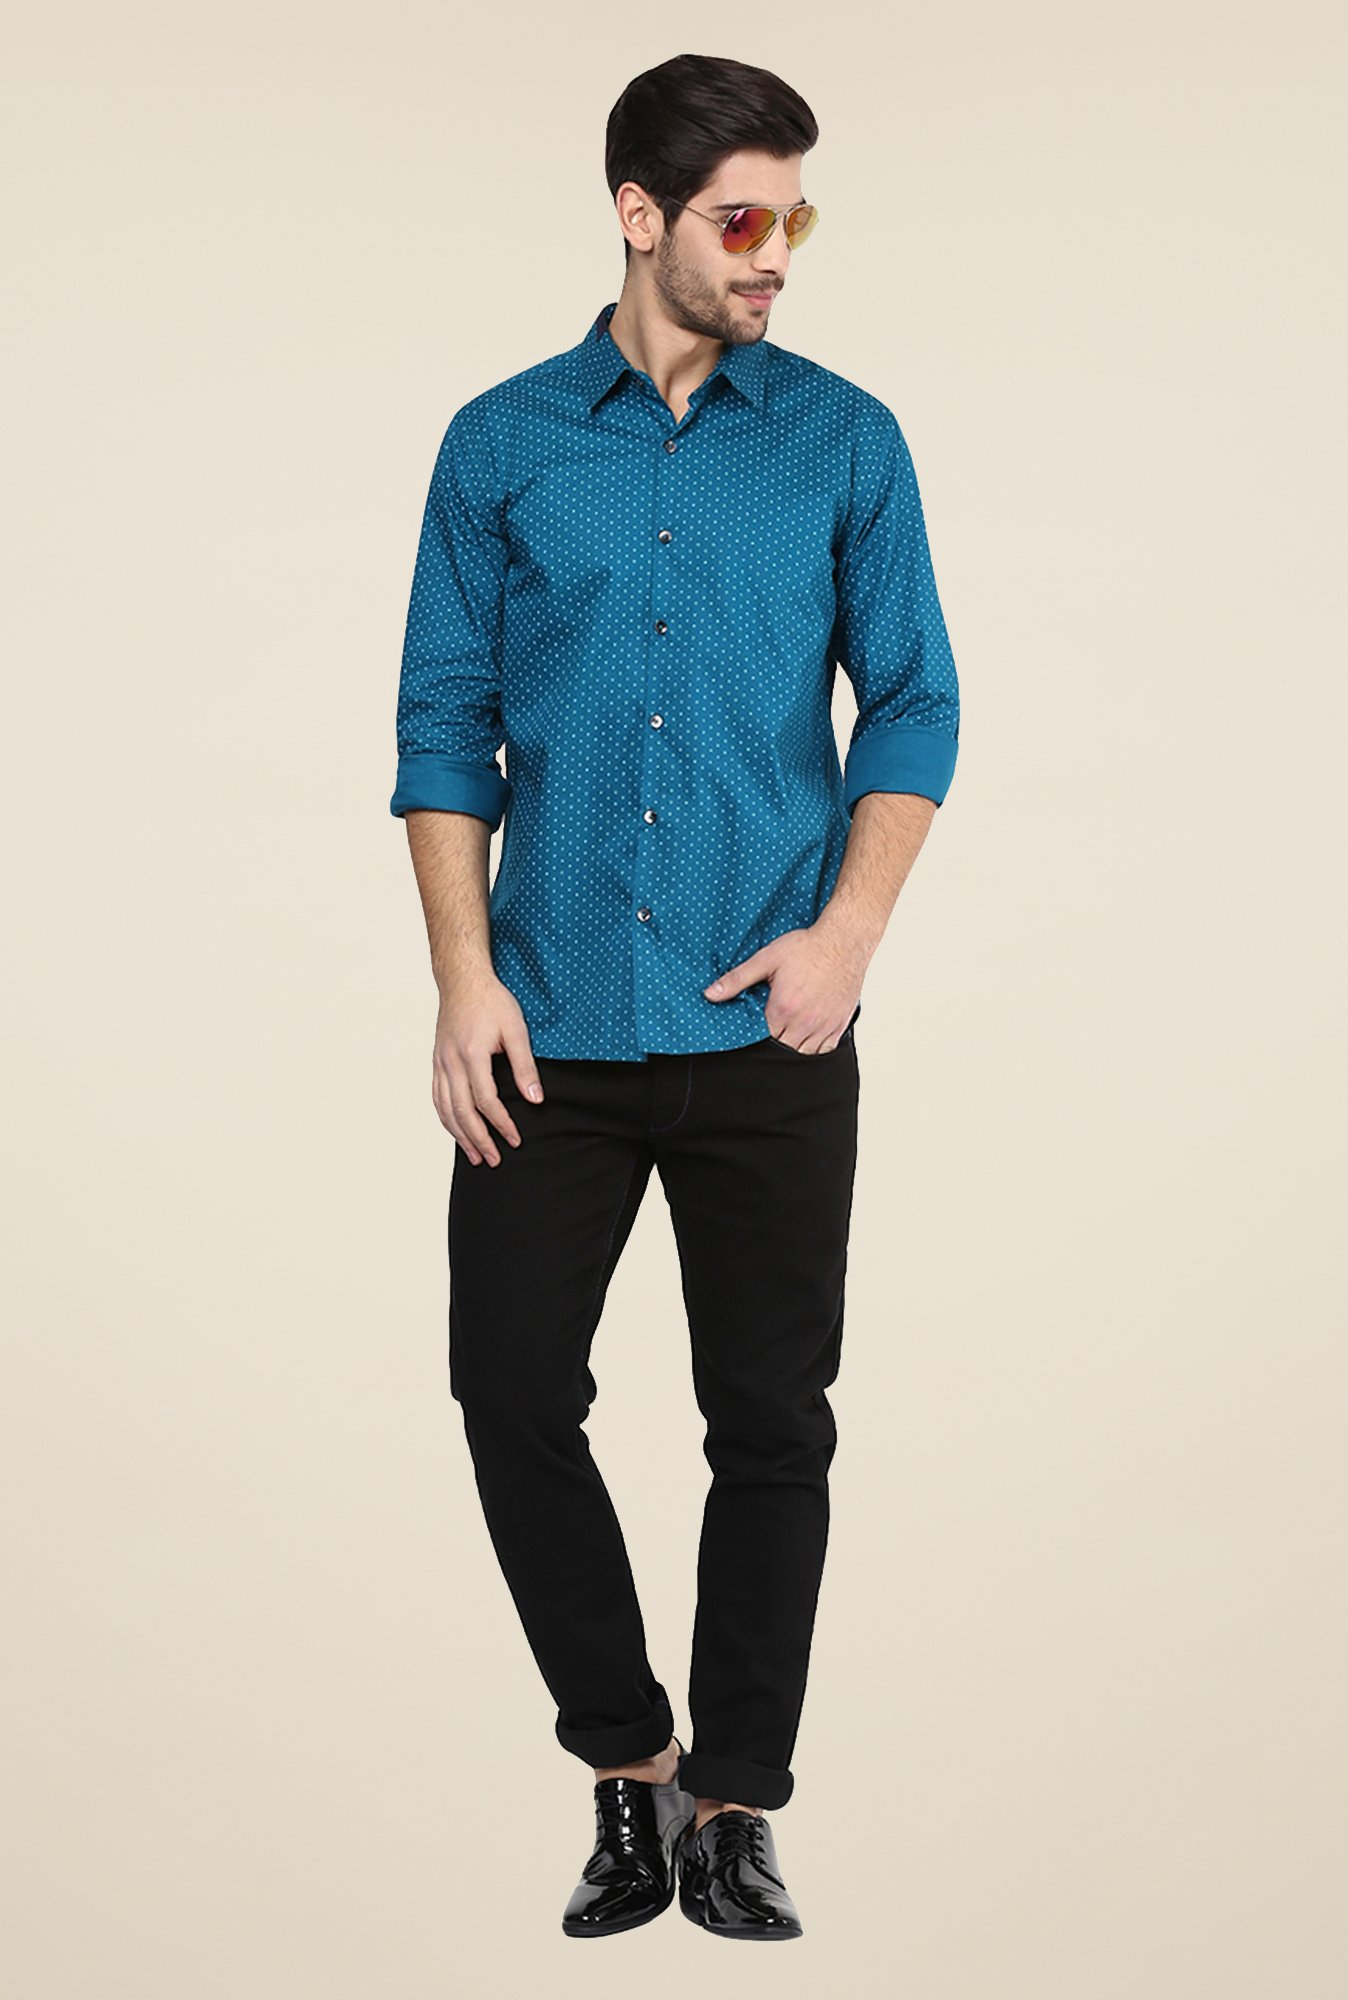 Yepme Teal Blue Bert Printed Party Shirt